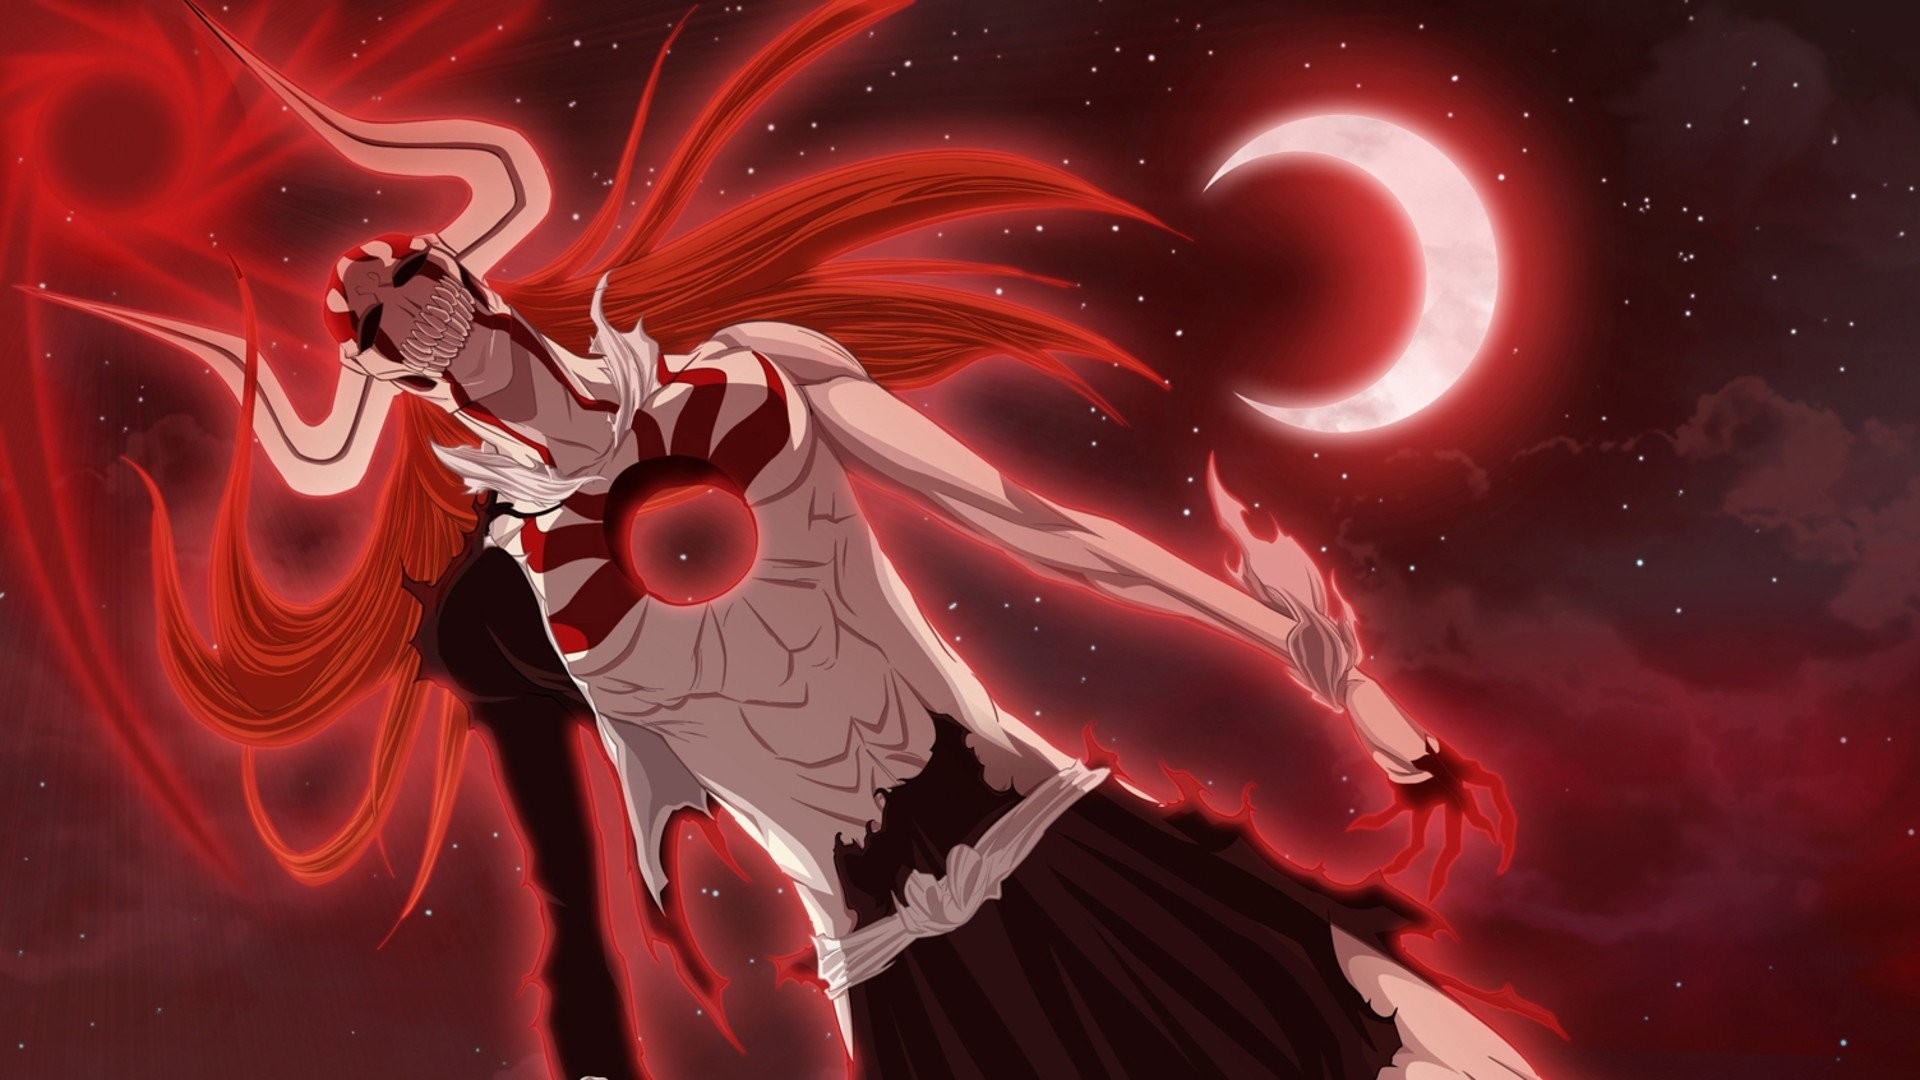 Res: 1920x1080, Bleach, Kurosaki Ichigo, Hollow, Clouds, Moon, Vasto Lorde, Crescent moon.  Trigun ...